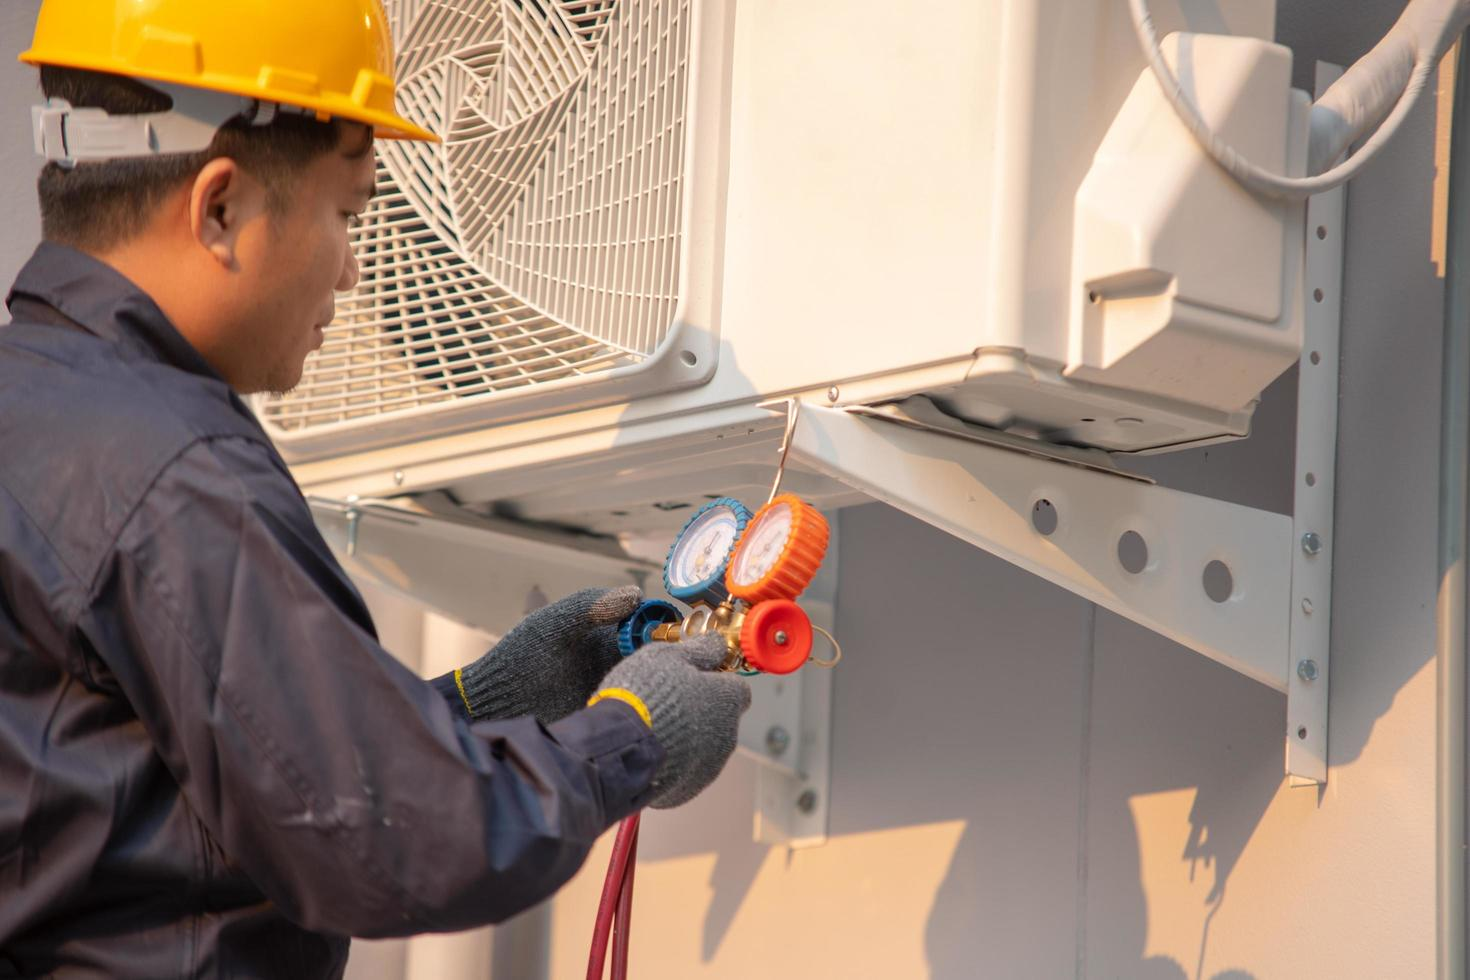 Technician are checking outdoor air conditioner unit,Measuring equipment for filling air conditioners. photo